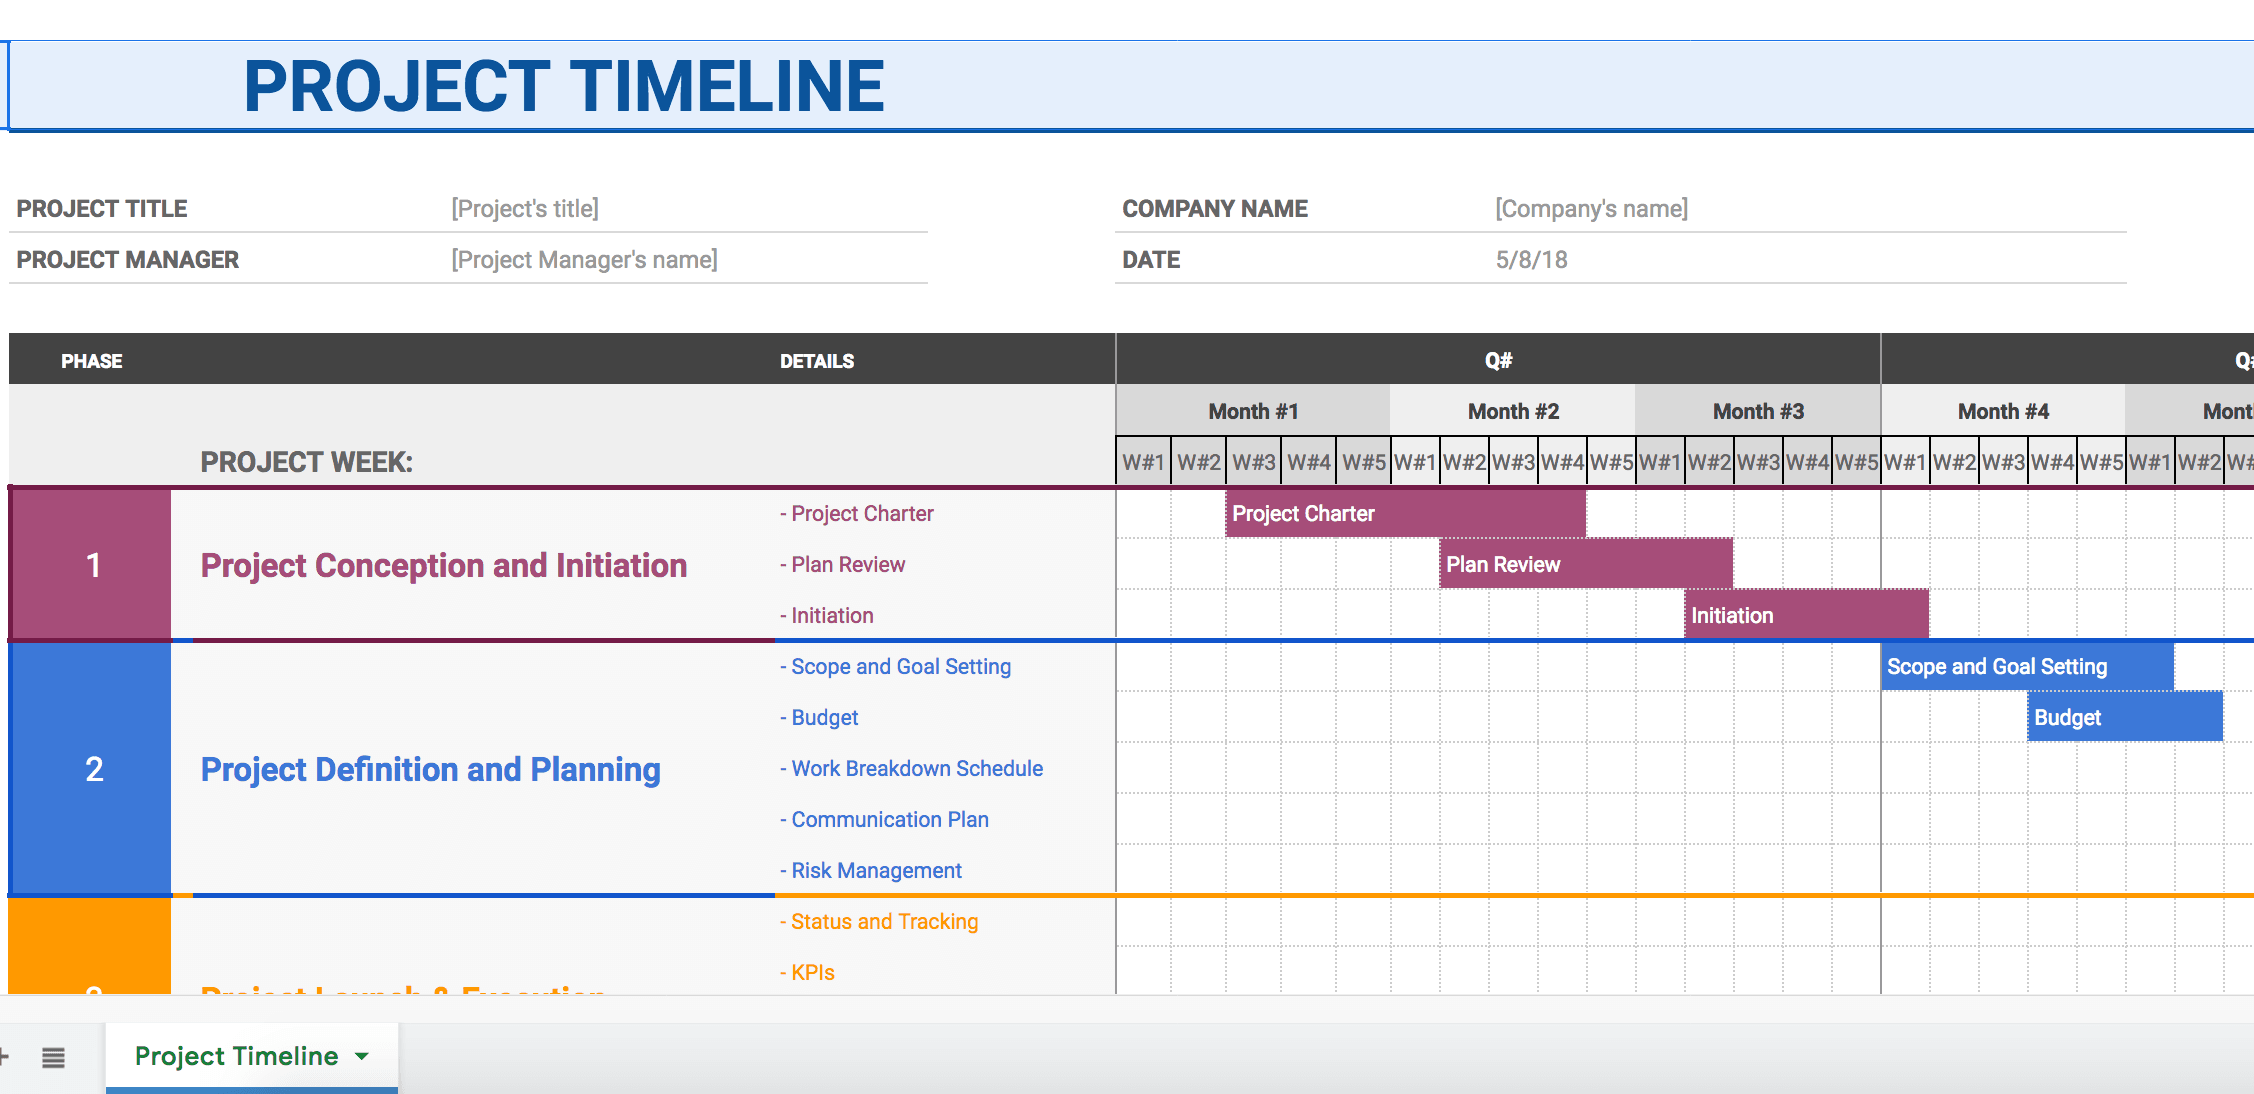 Project Timeline in Google Docs